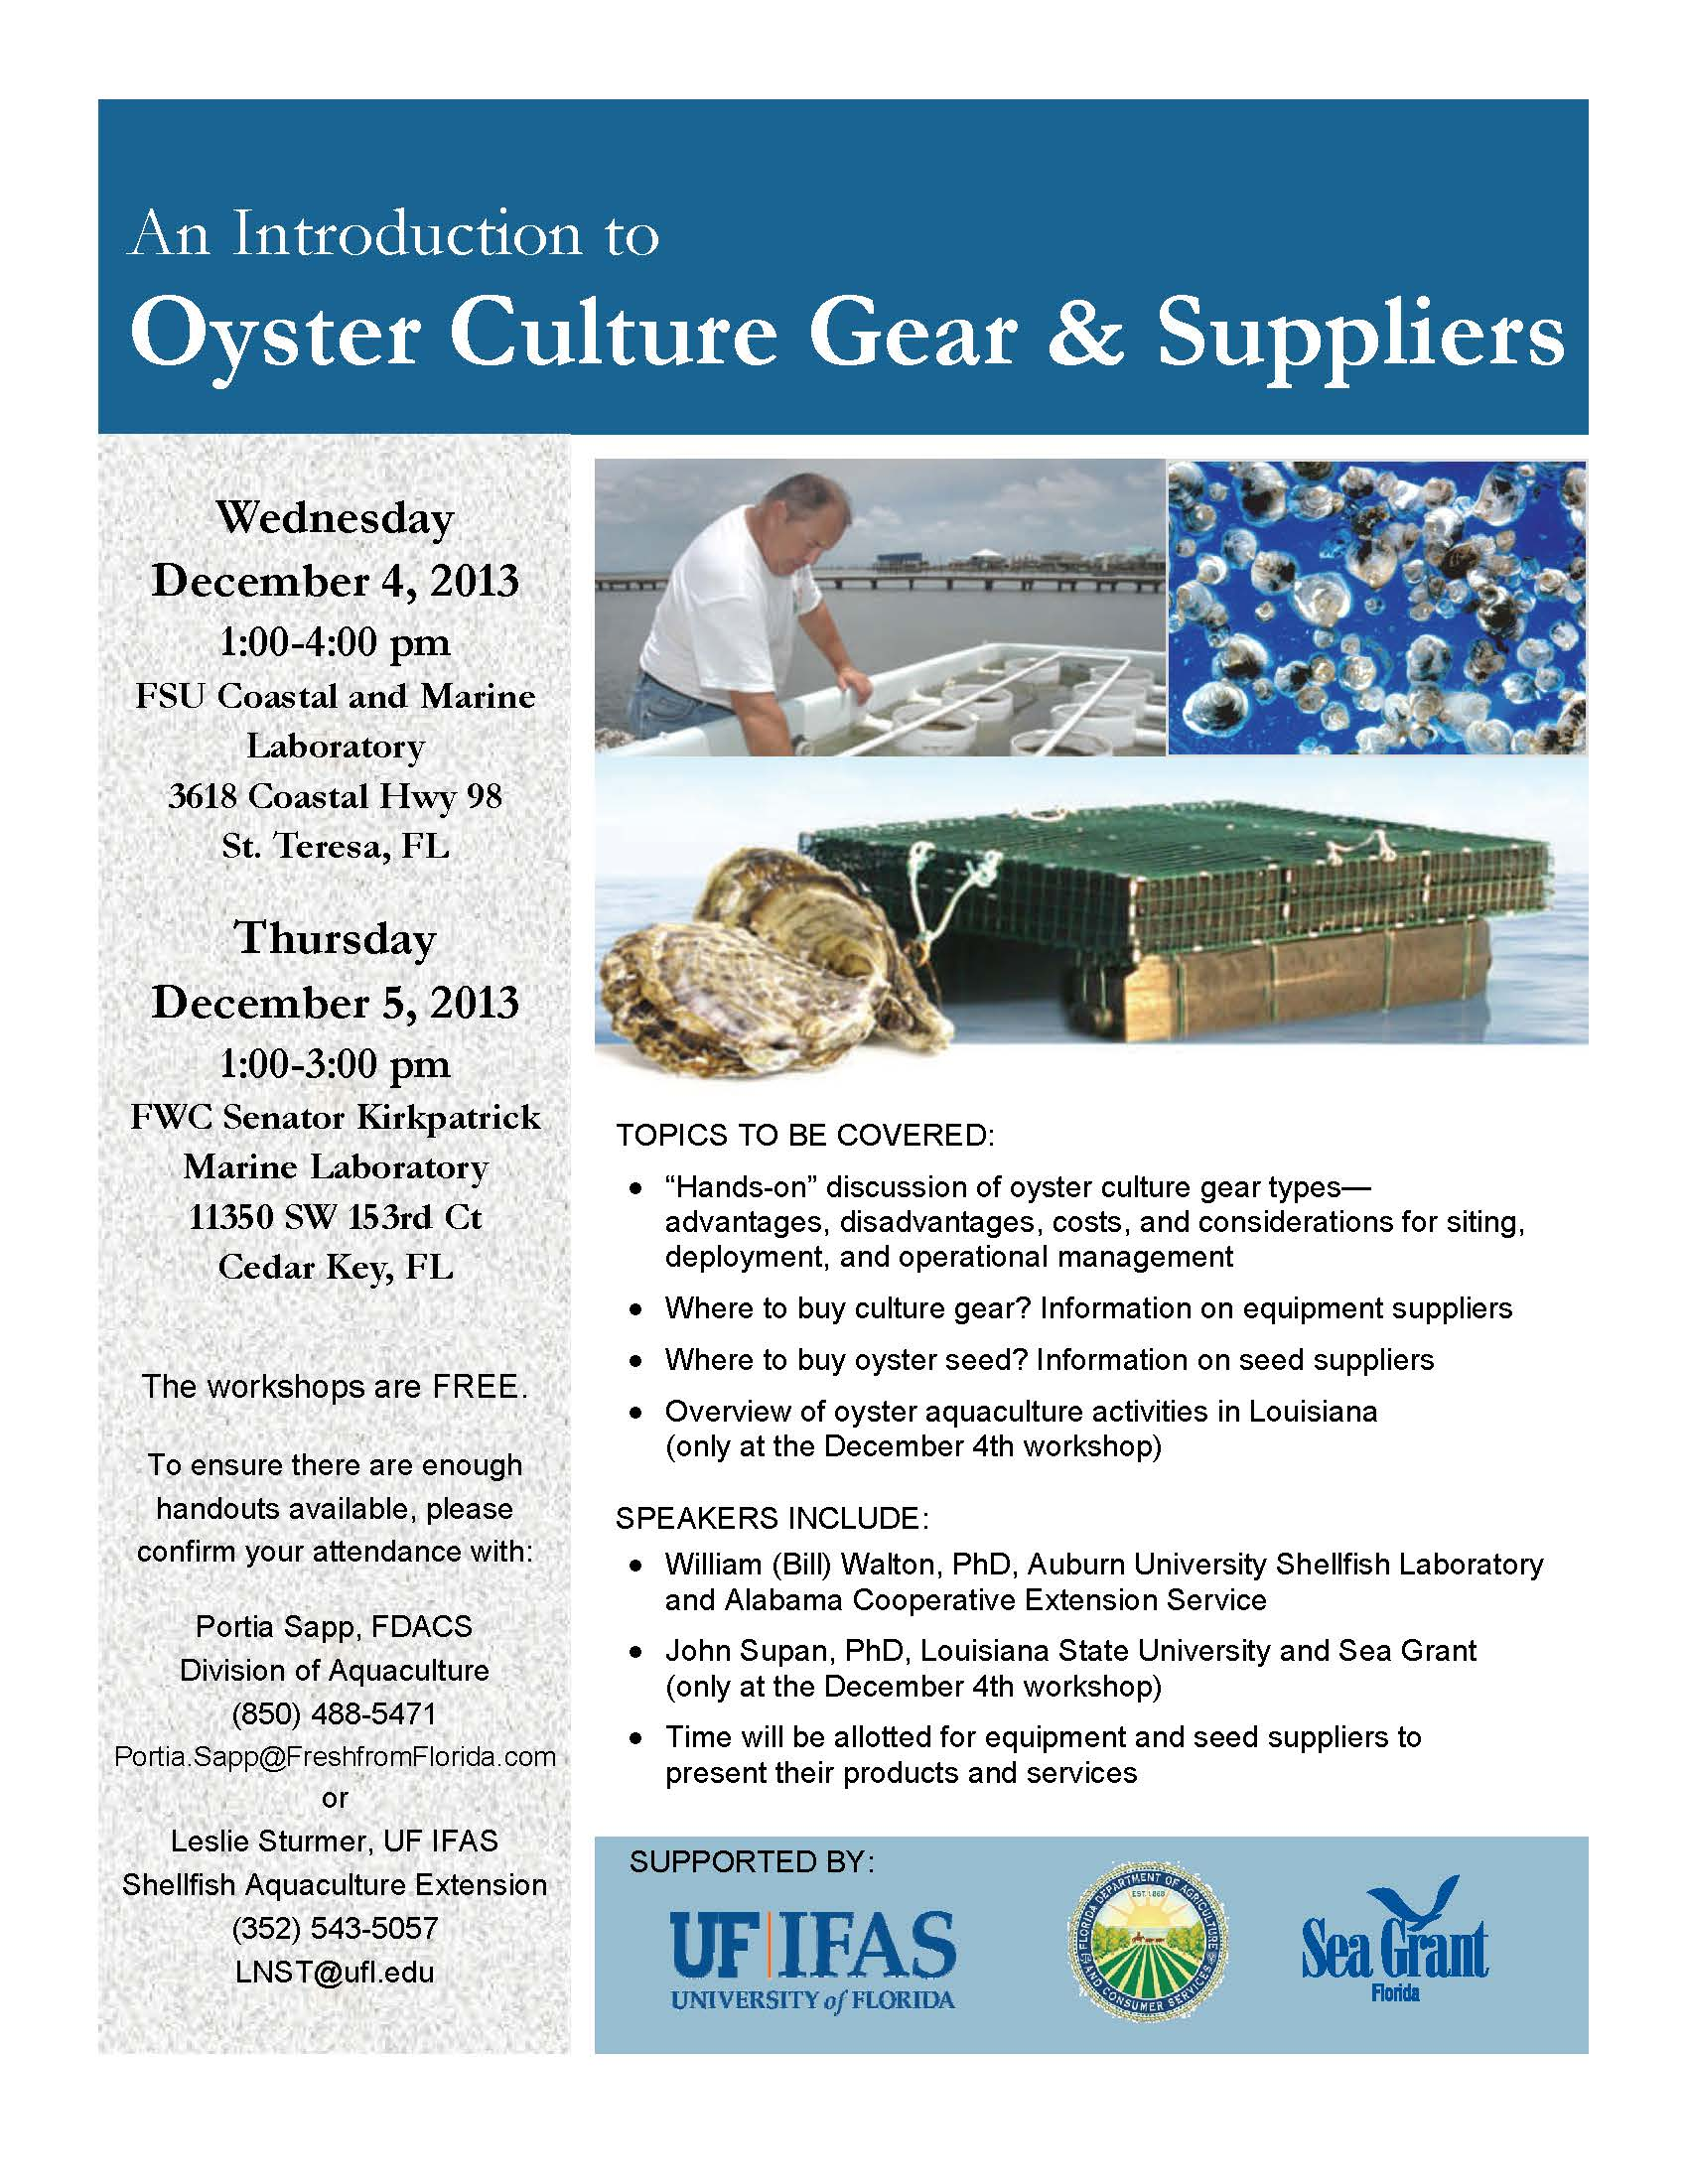 Oyster Culture Gear and Suppliers_AGENDA-sm